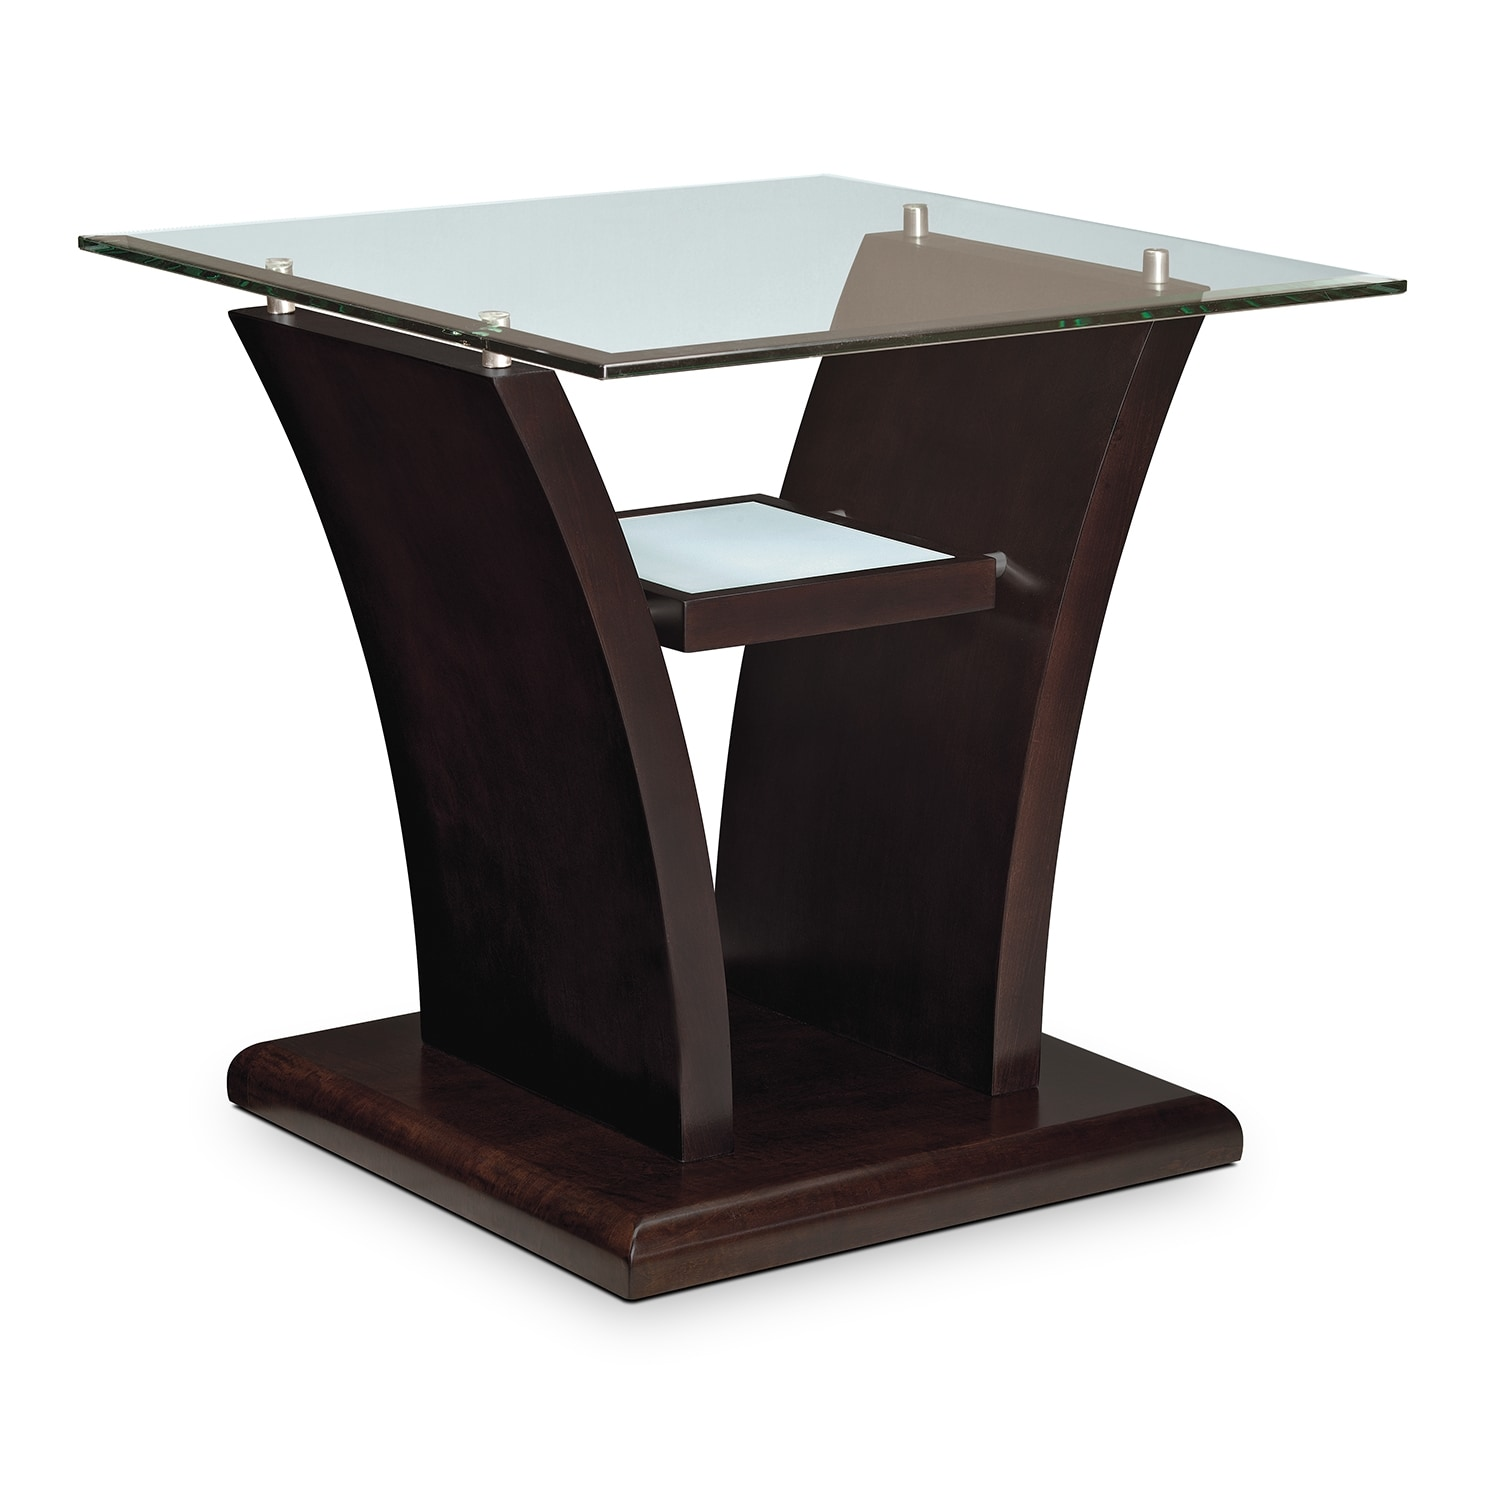 Bell aer occasional tables end table value city furniture for Occasional furniture